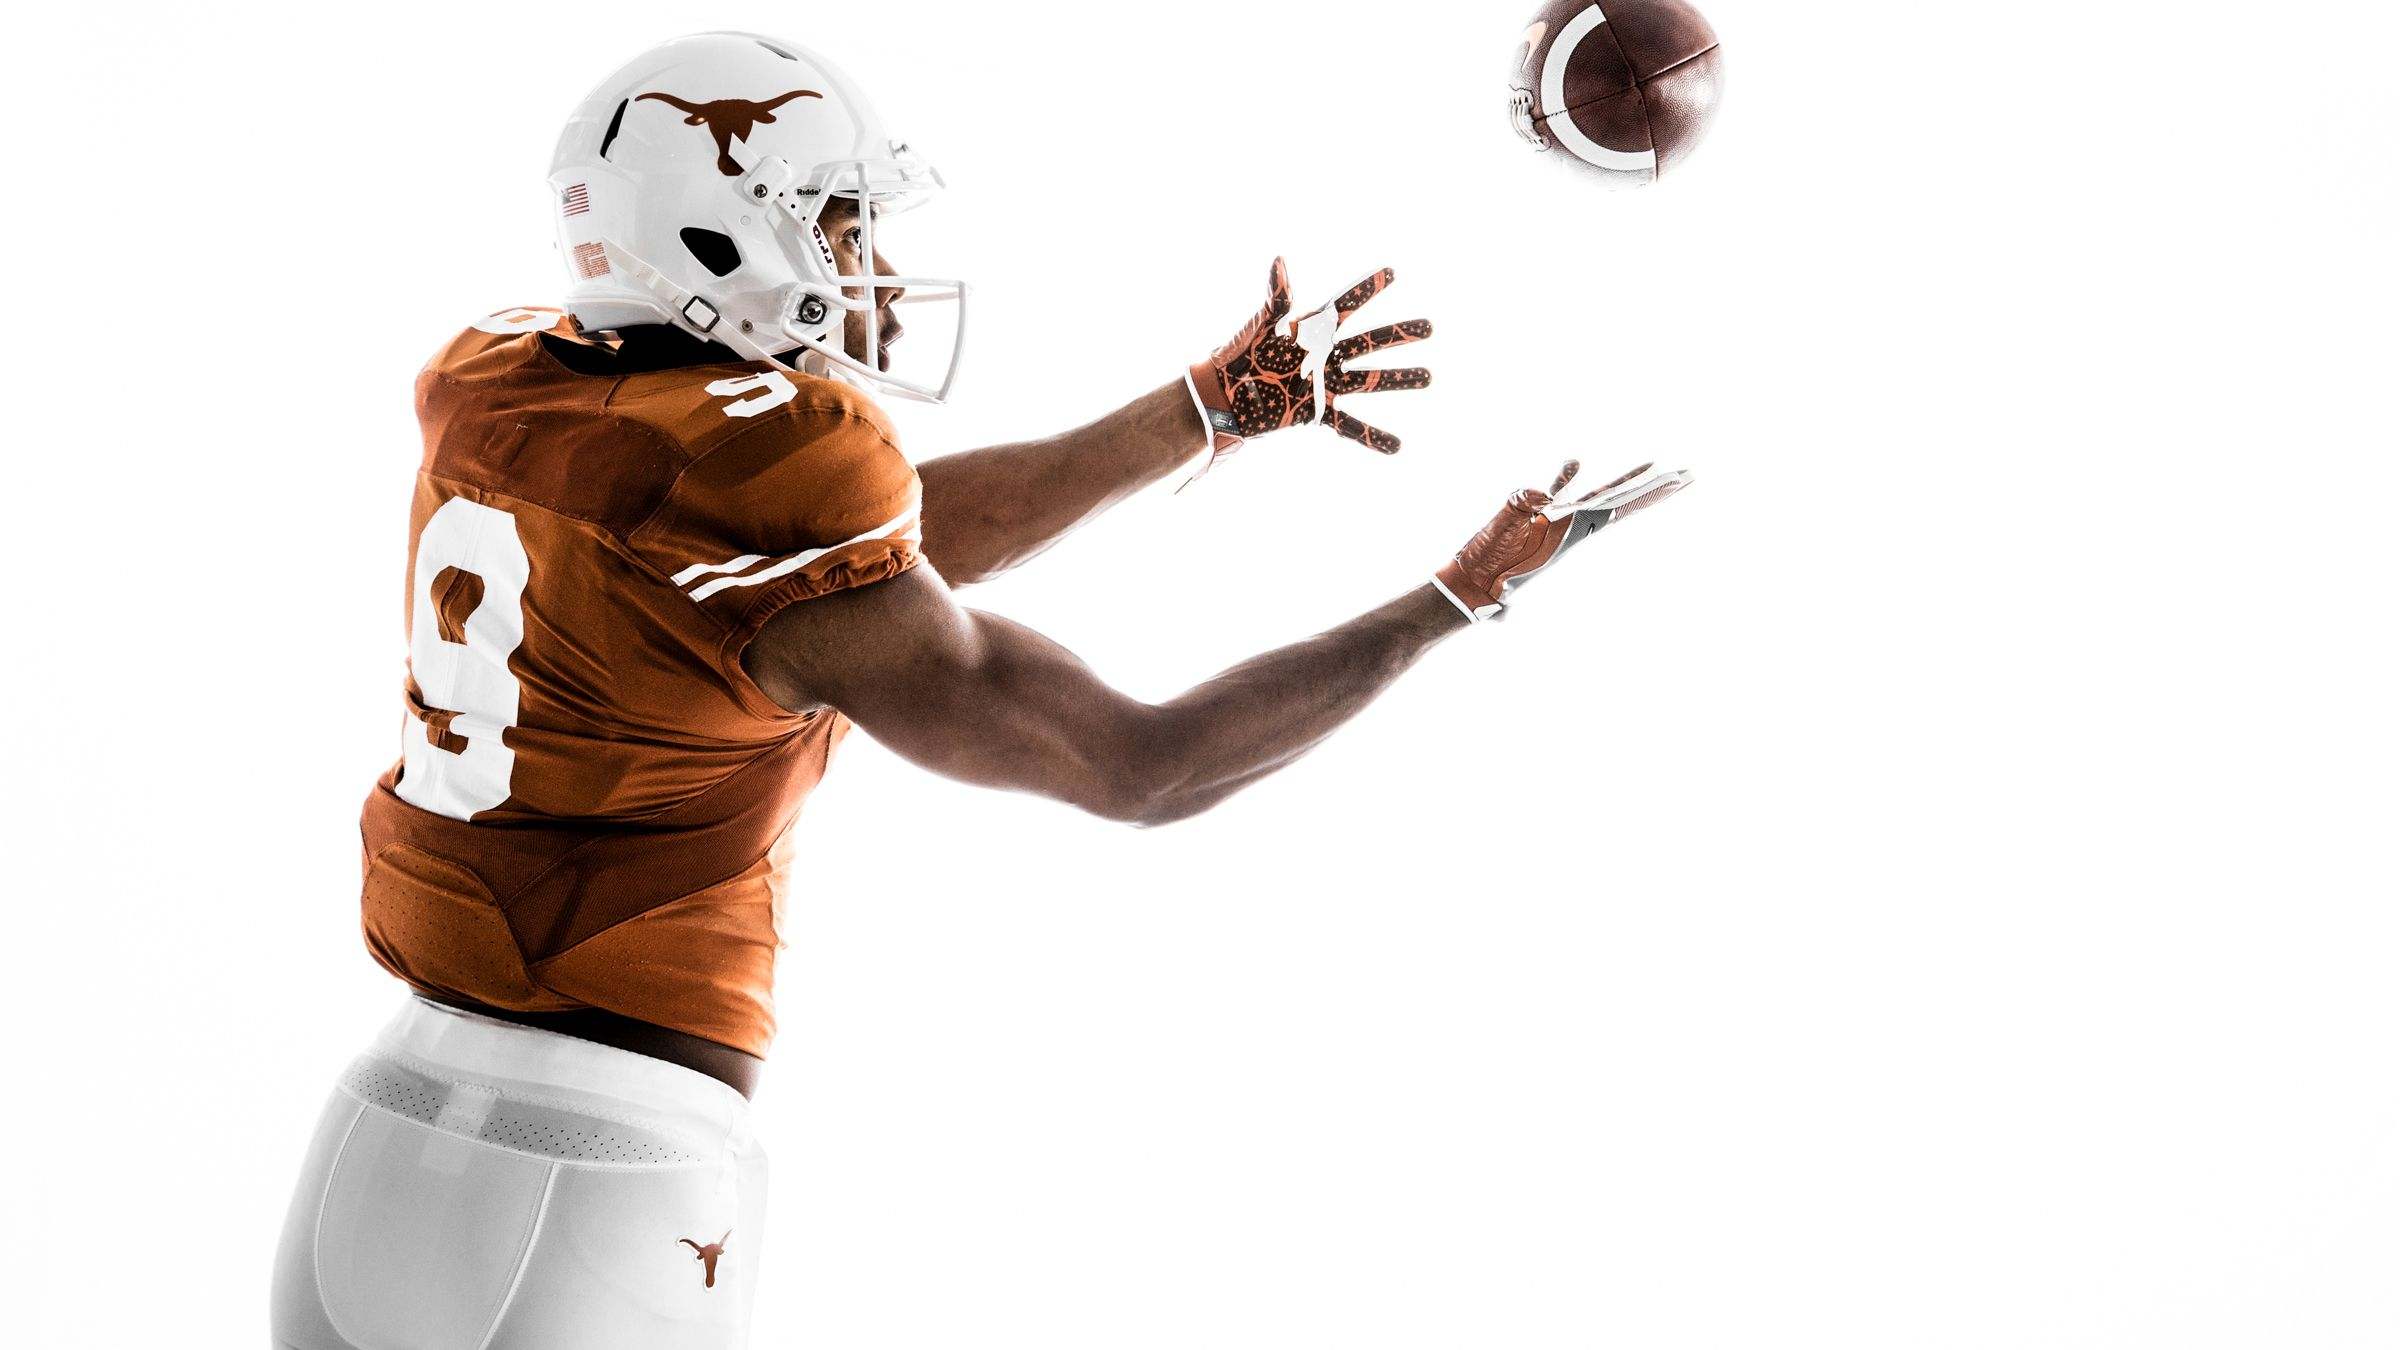 Pin By Commander Cody On Longhorn Nation In 2020 Photoshoot Poses Poses Photoshoot